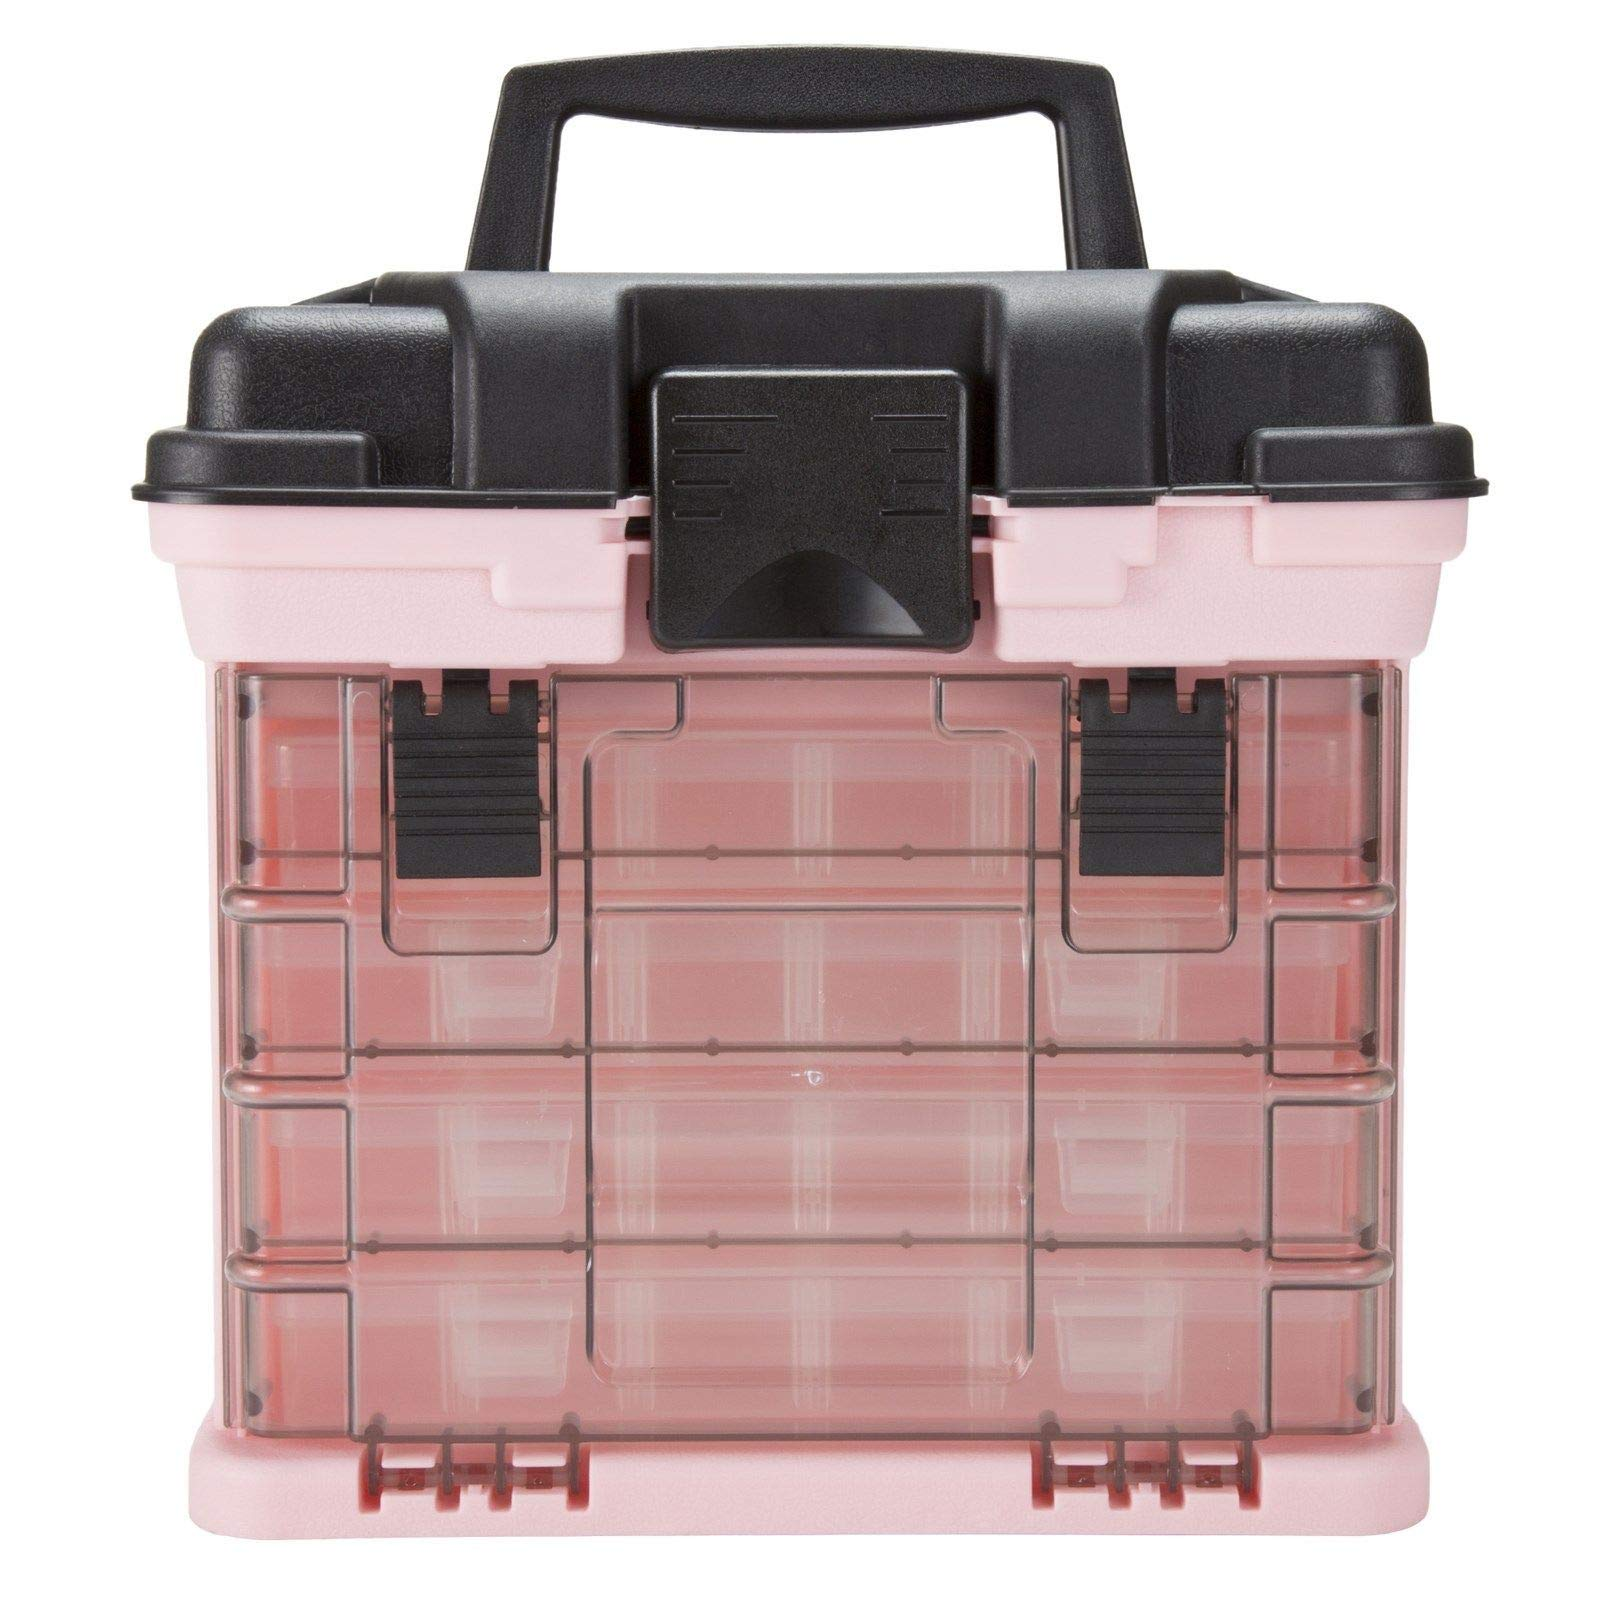 Adumly Color Pink Plastic Storage Crafts or Beads Removeable Trays Compartments